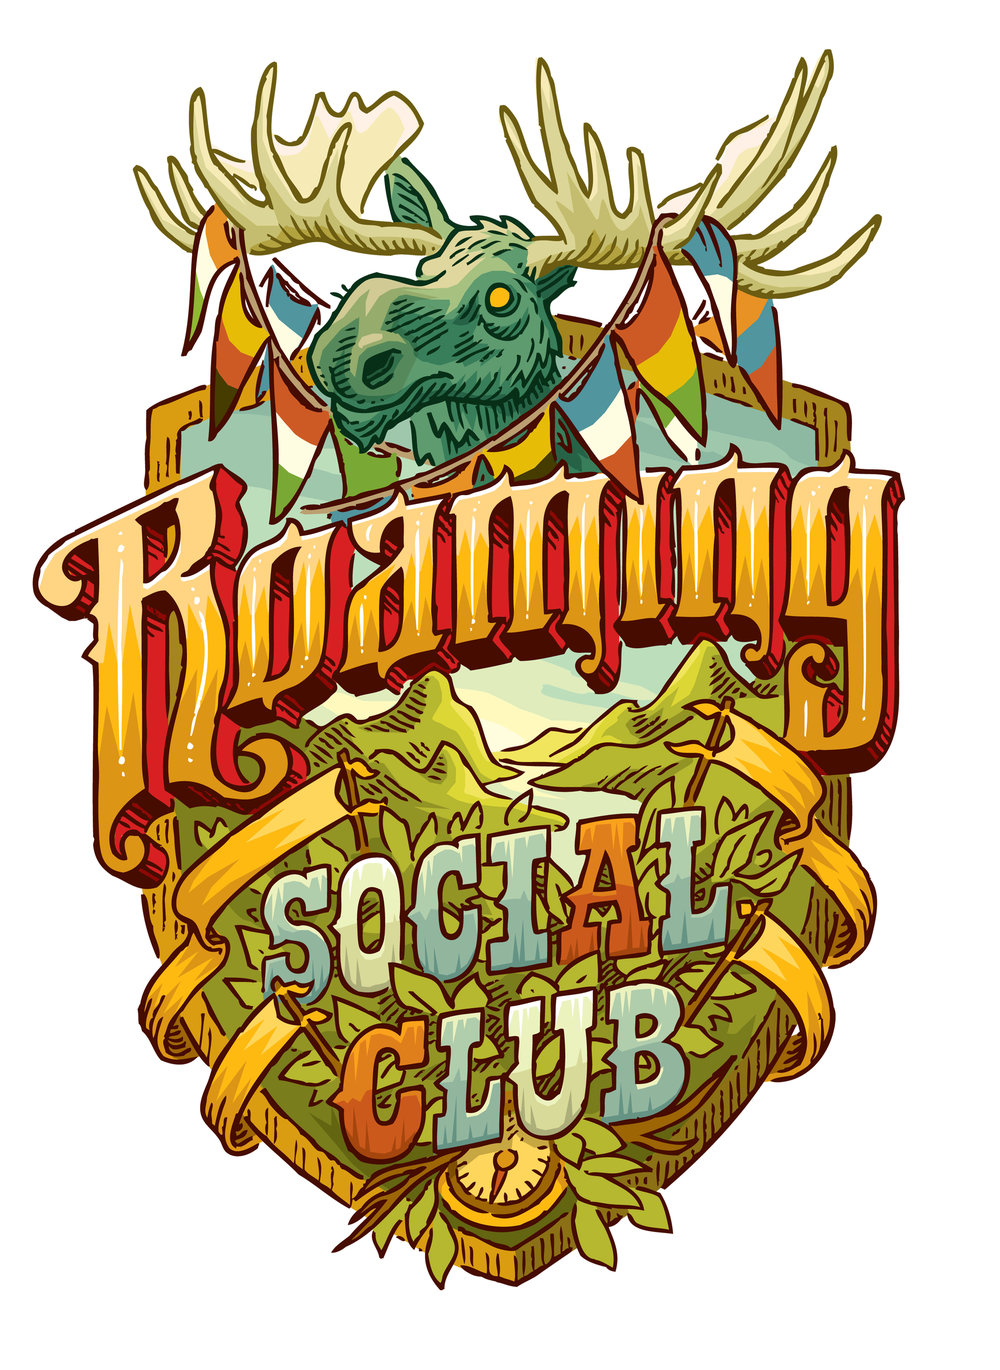 roaming social club logo.jpg